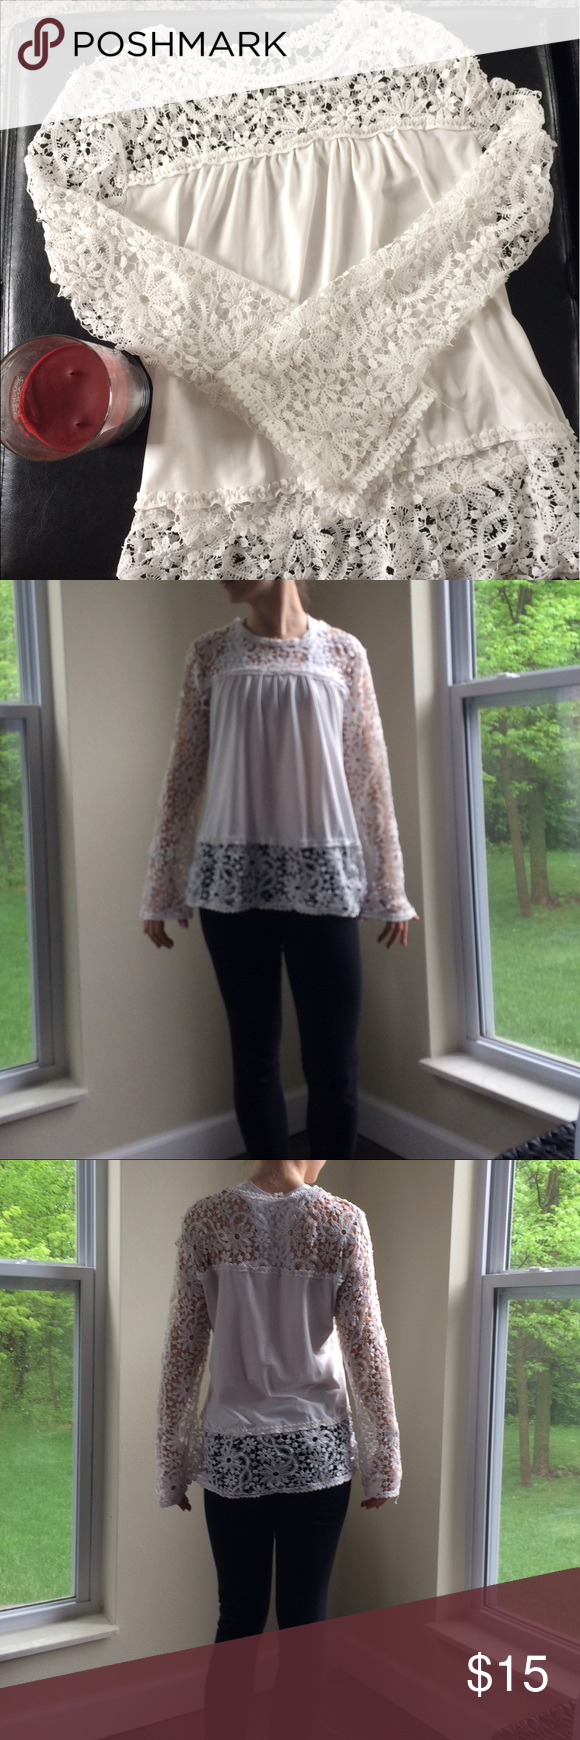 White lace shirt Beautiful white shirt with floral lace sleeves Tops Tees - Long Sleeve